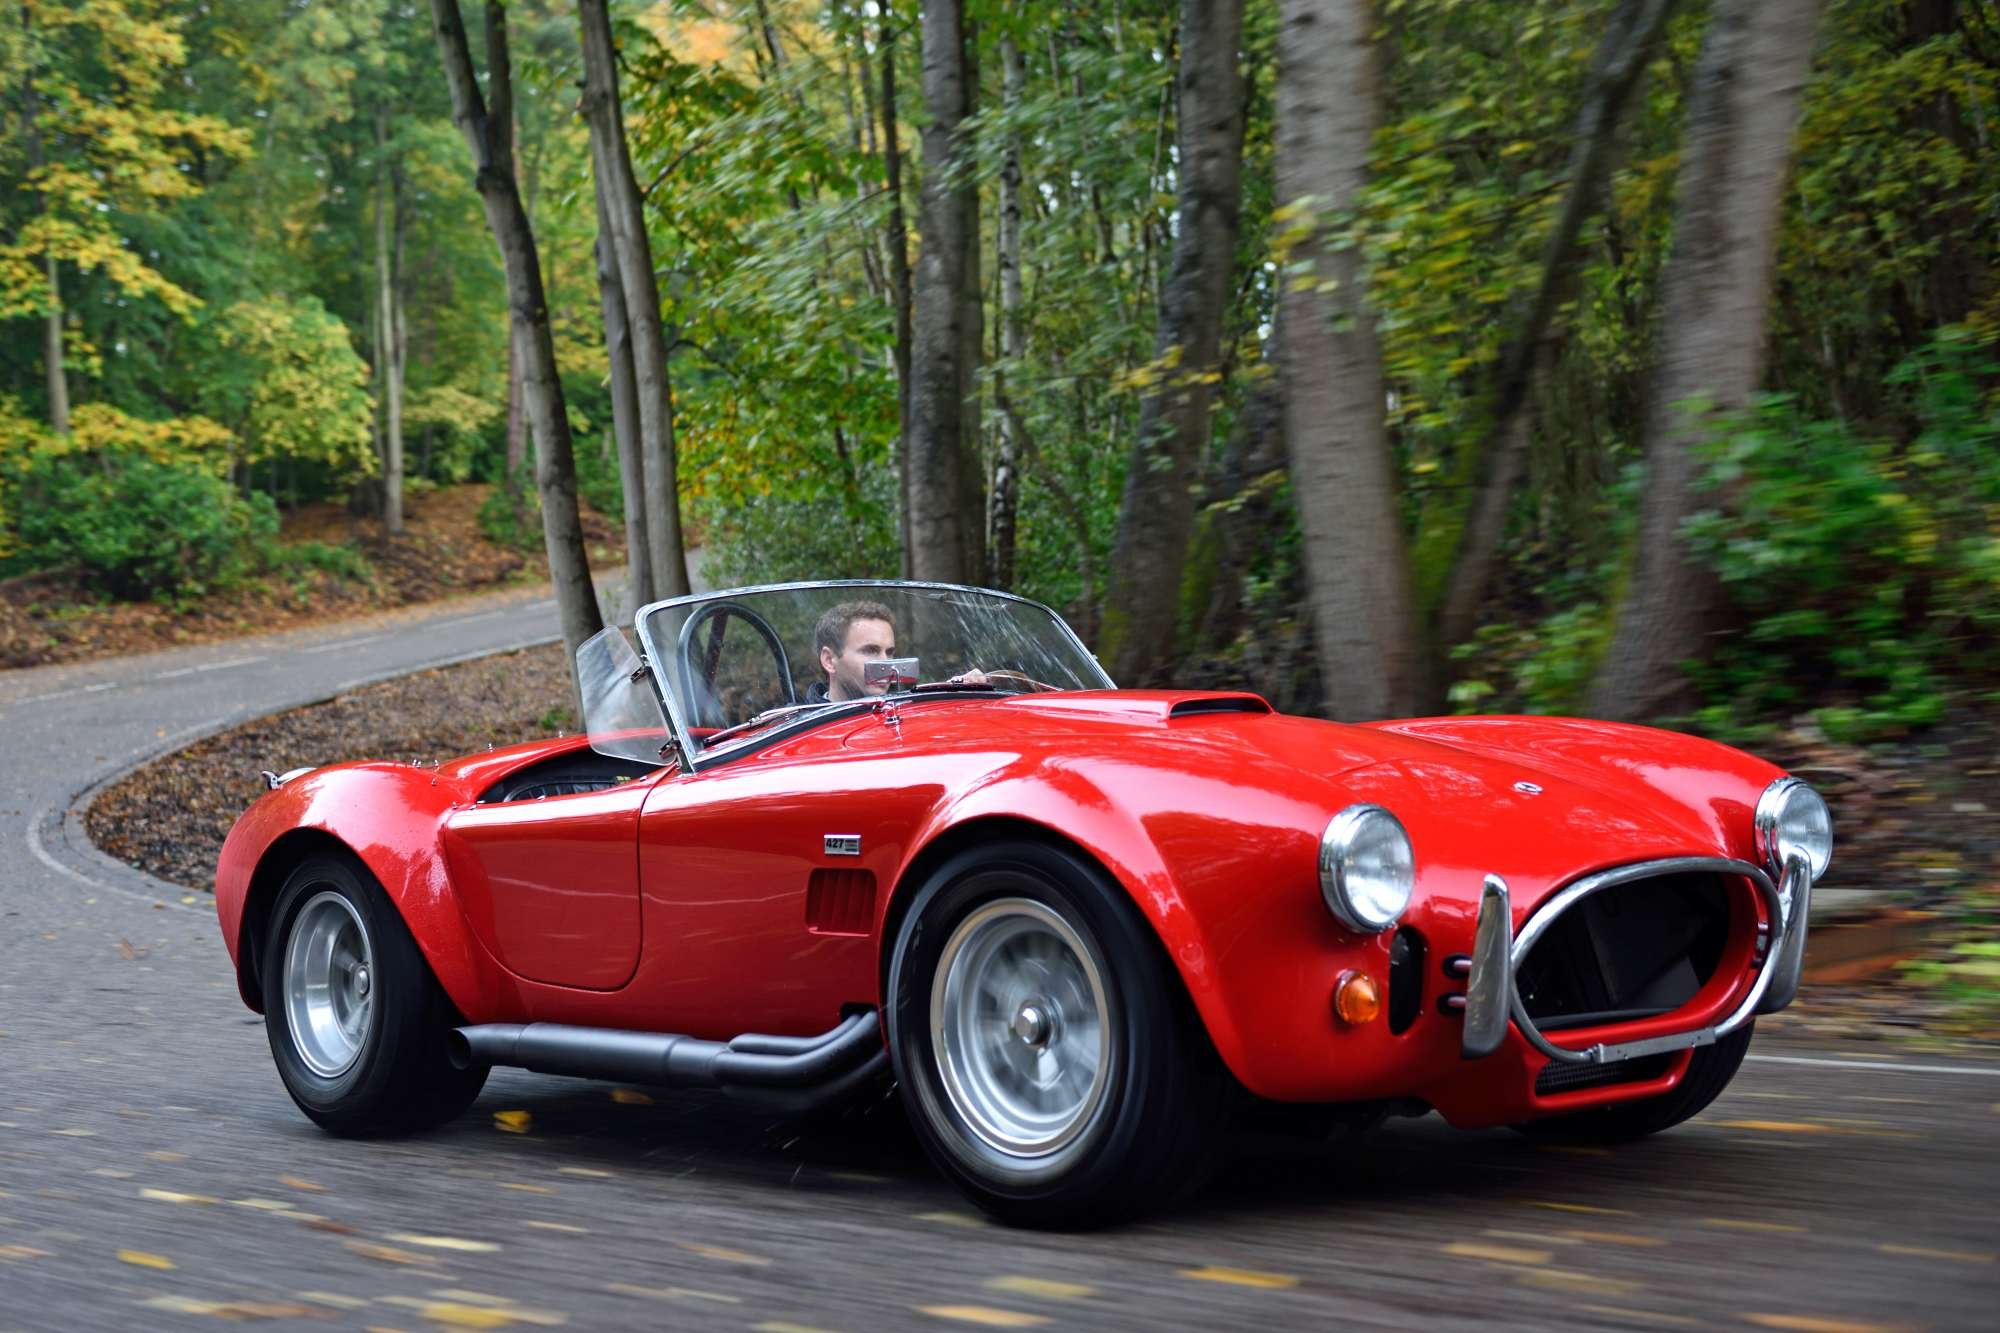 Check Out This Original, Unrestored 1966 Shelby 427 Cobra